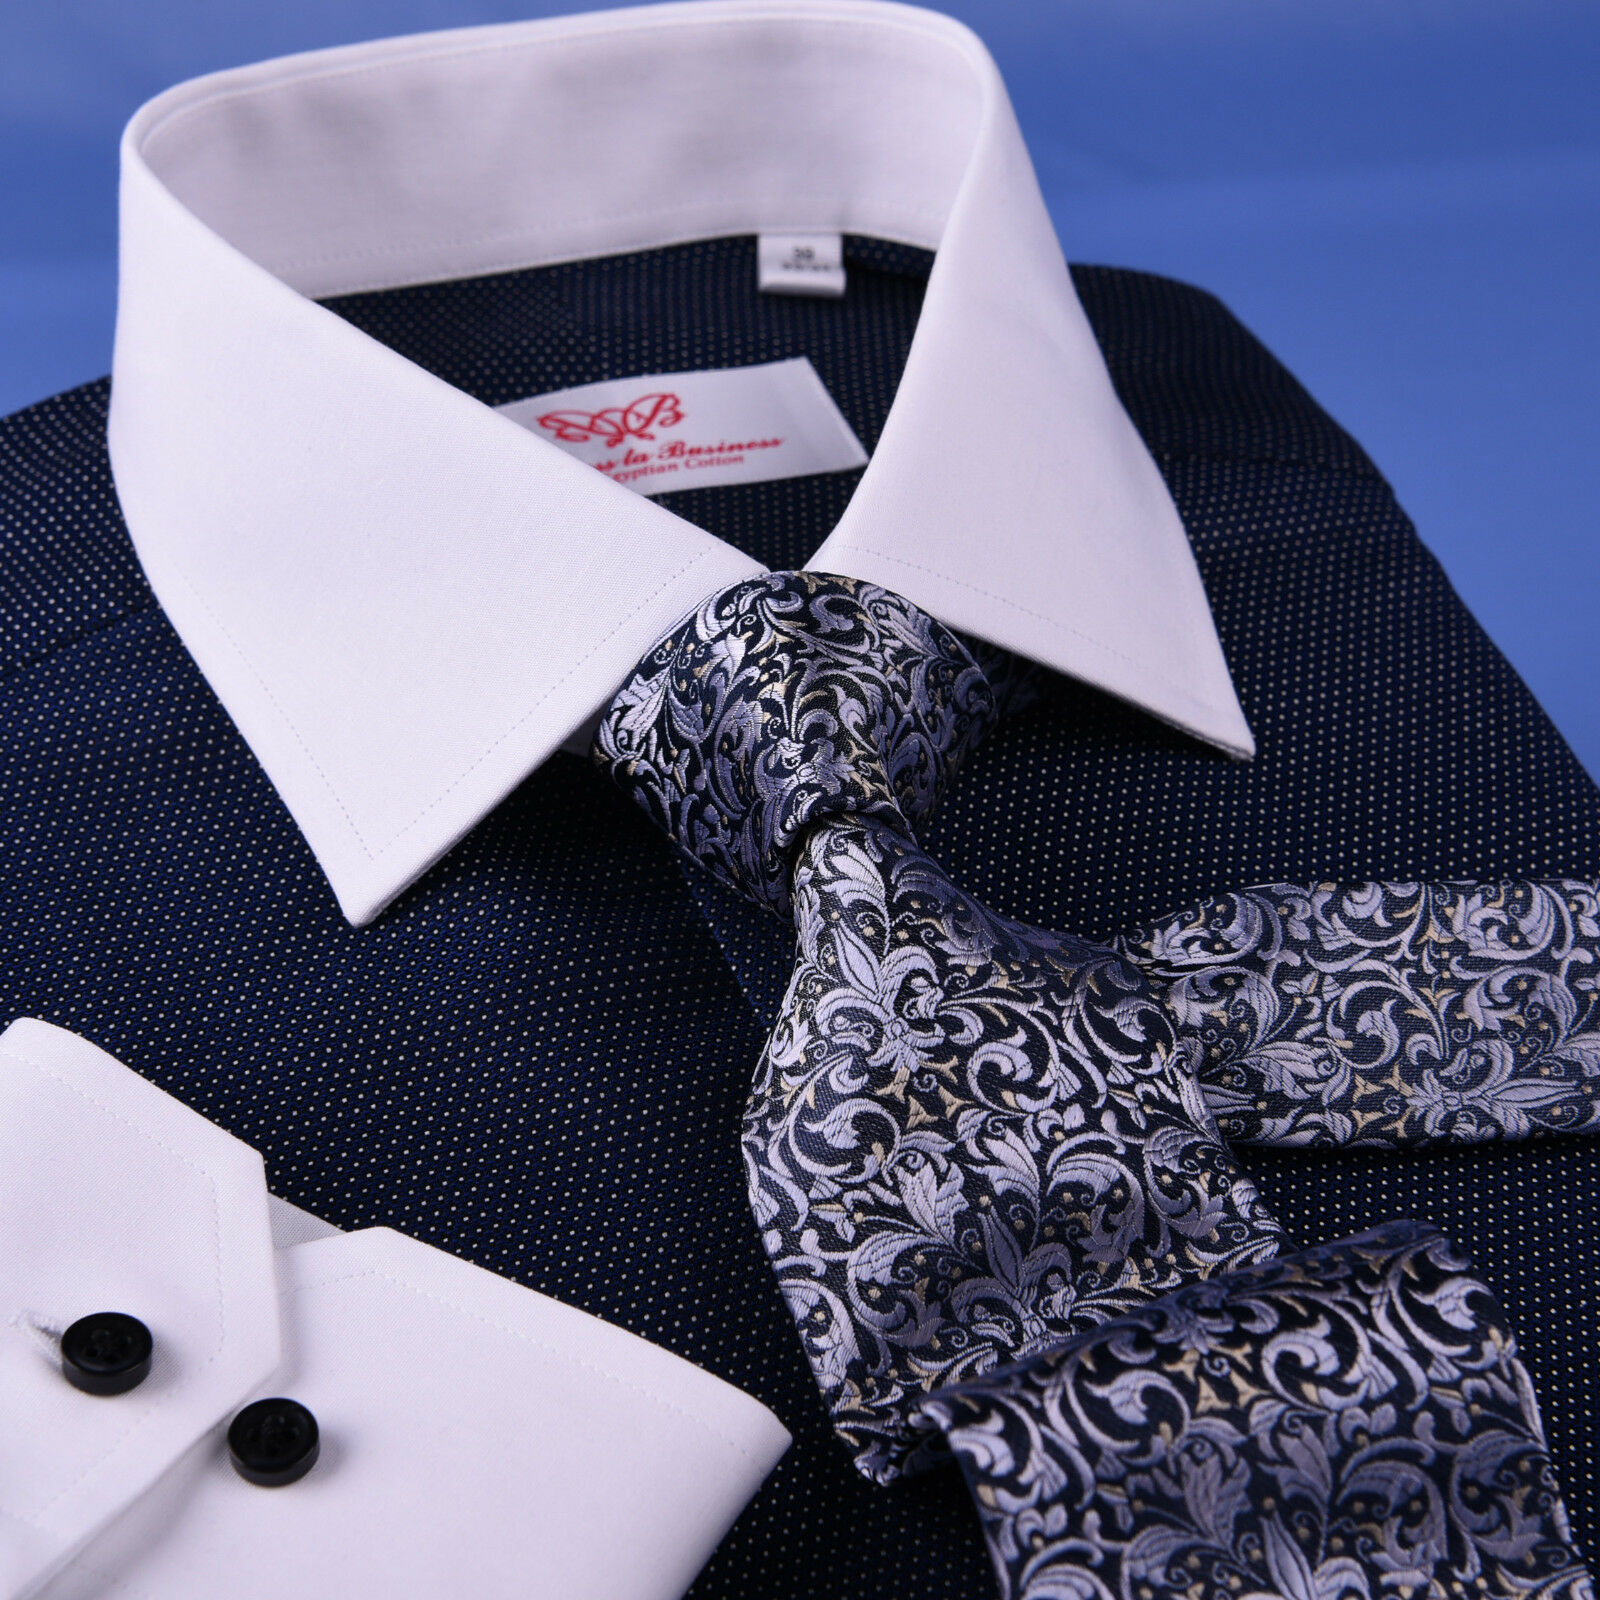 Dark Navy DOT With Weiß Contrast Collar & Cuff For Formal Geschäft Dress Shirt